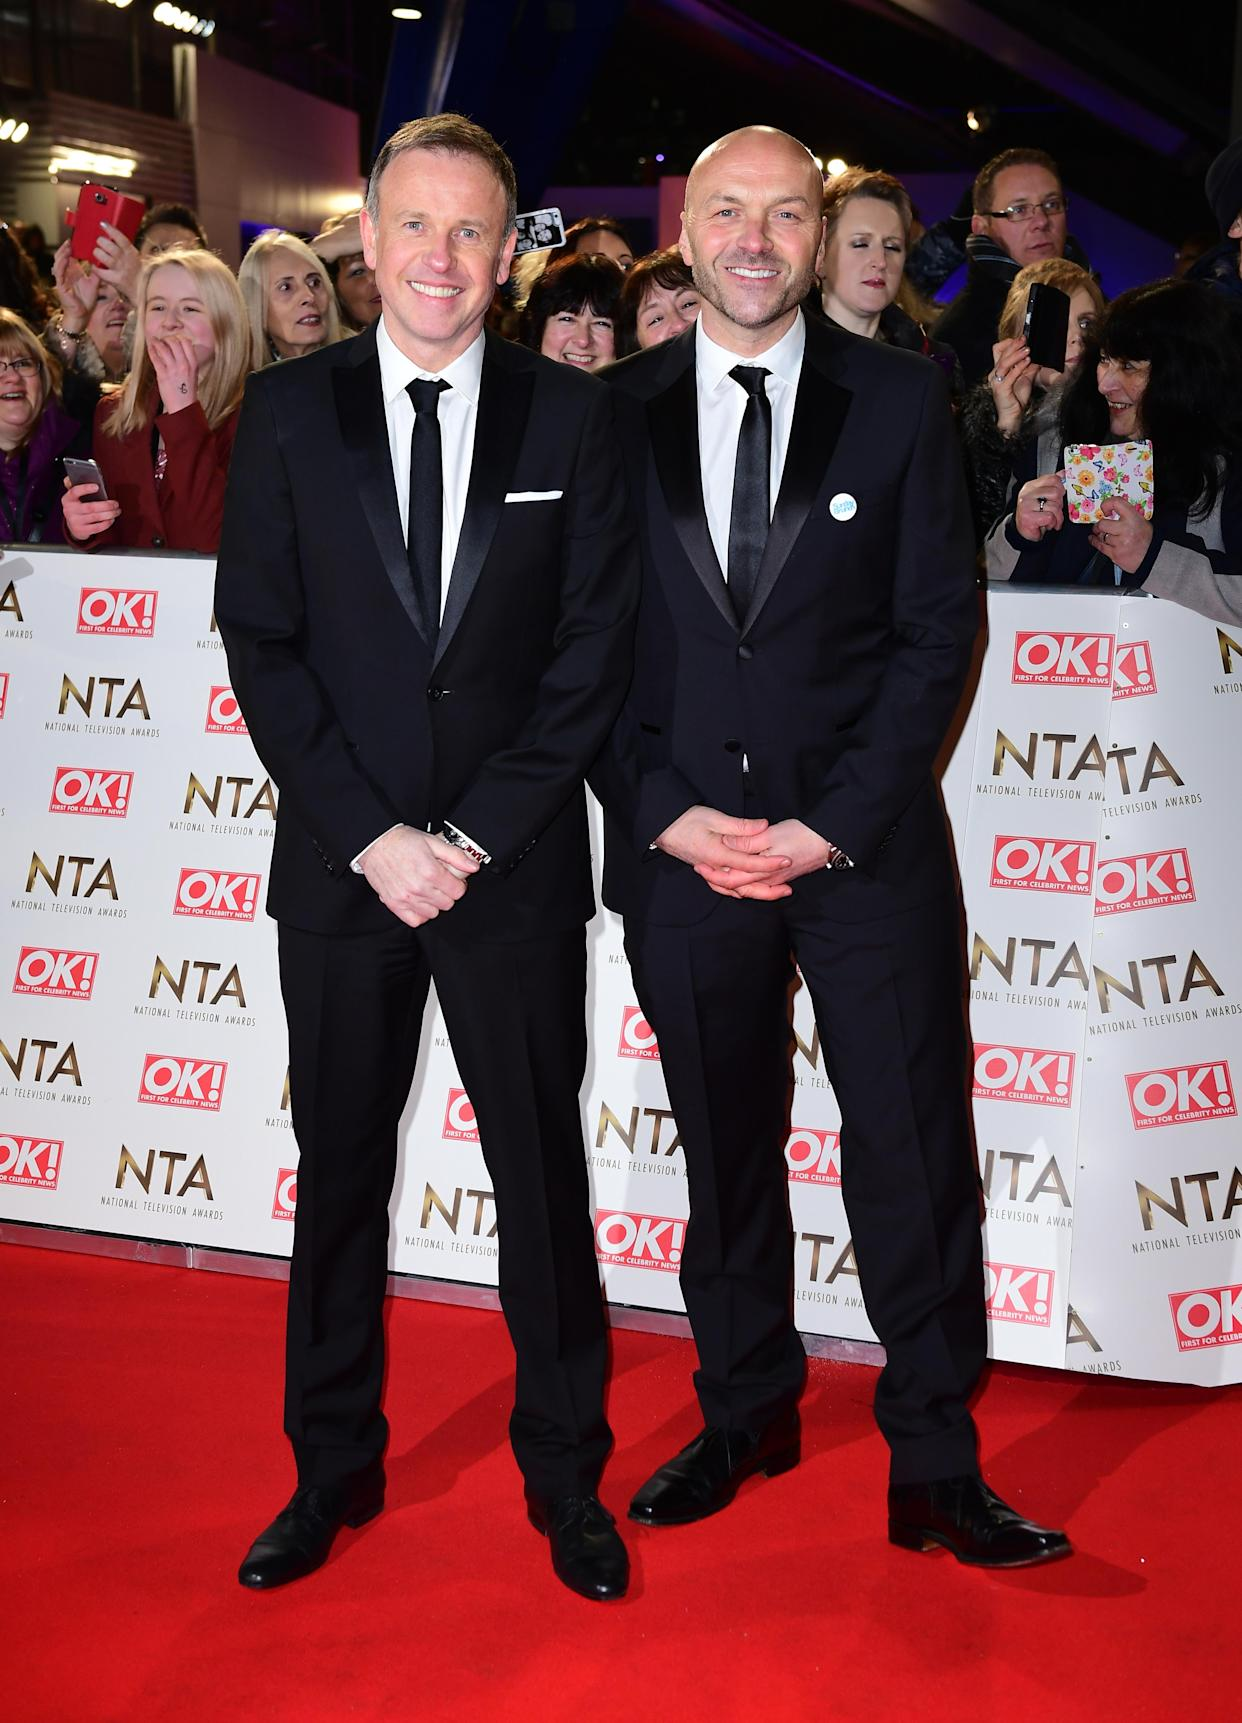 Tim Lovejoy and Simon Rimmer arriving at the National Television Awards 2017, held at The O2 Arena, London. PRESS ASSOCIATION Photo. Picture date: 25th January, 2017. See PA Story SHOWBIZ NTAs. Photo credit should read: Ian West/PA Wire